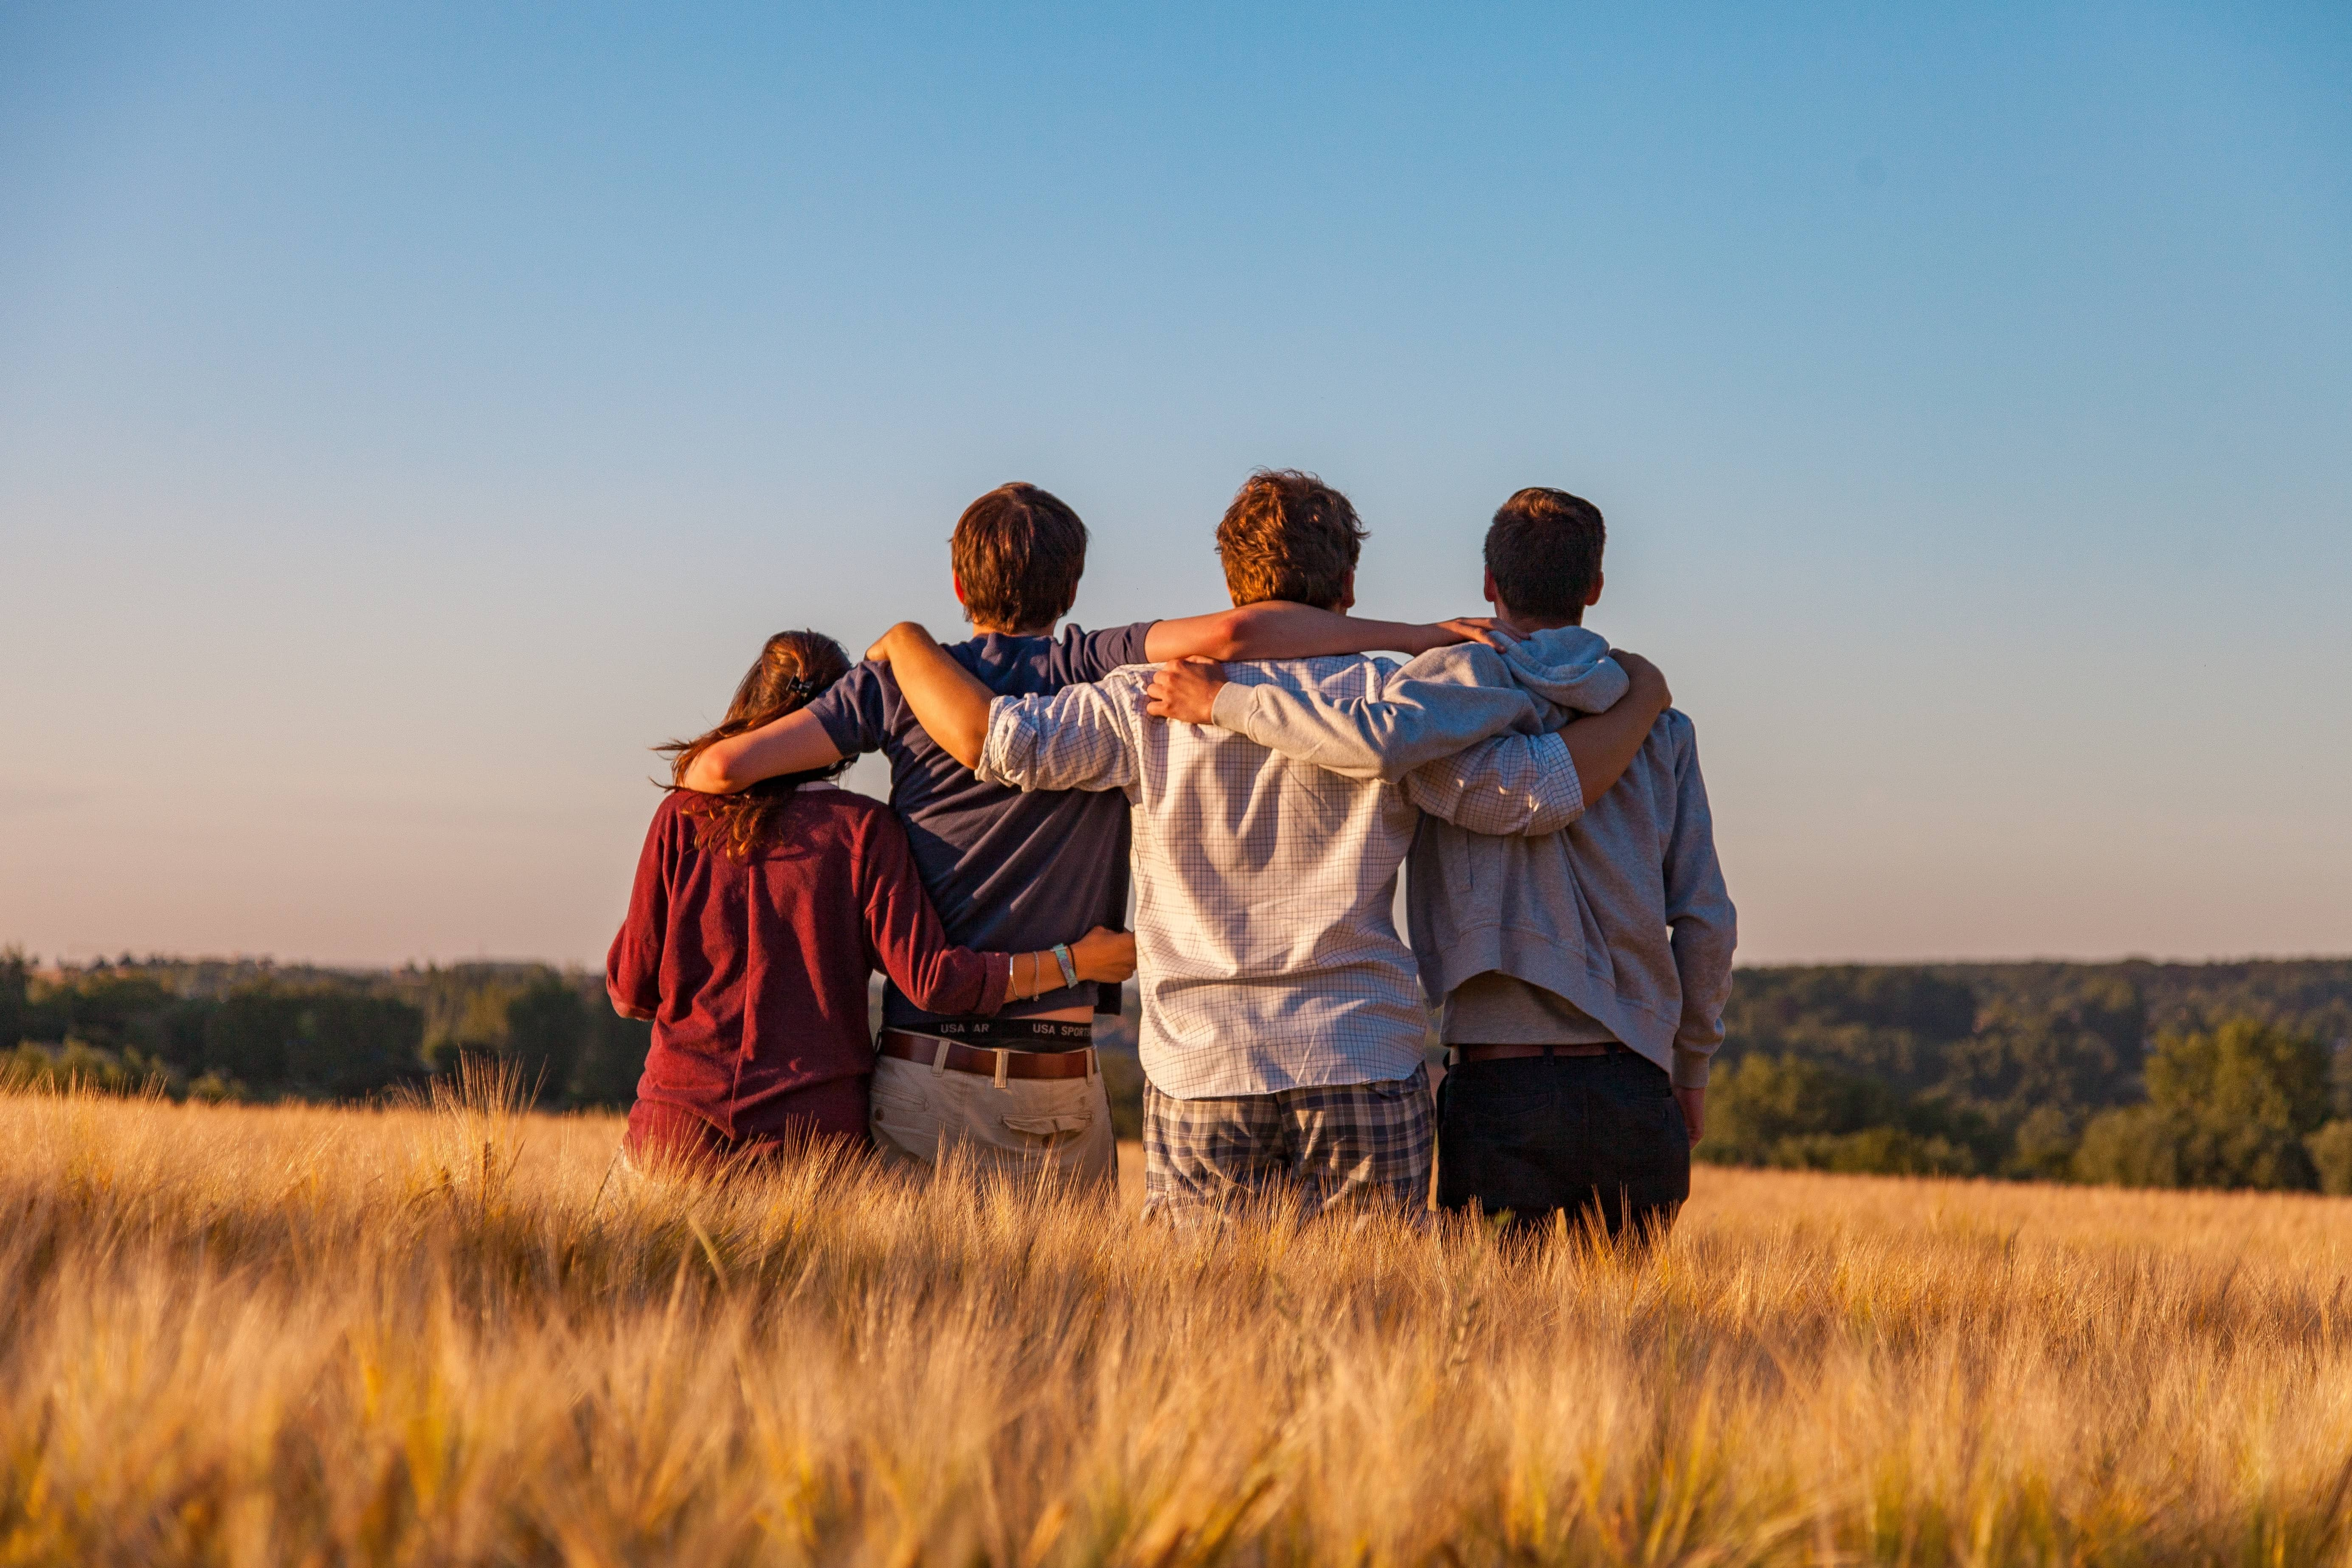 Four teens with their arms around each other